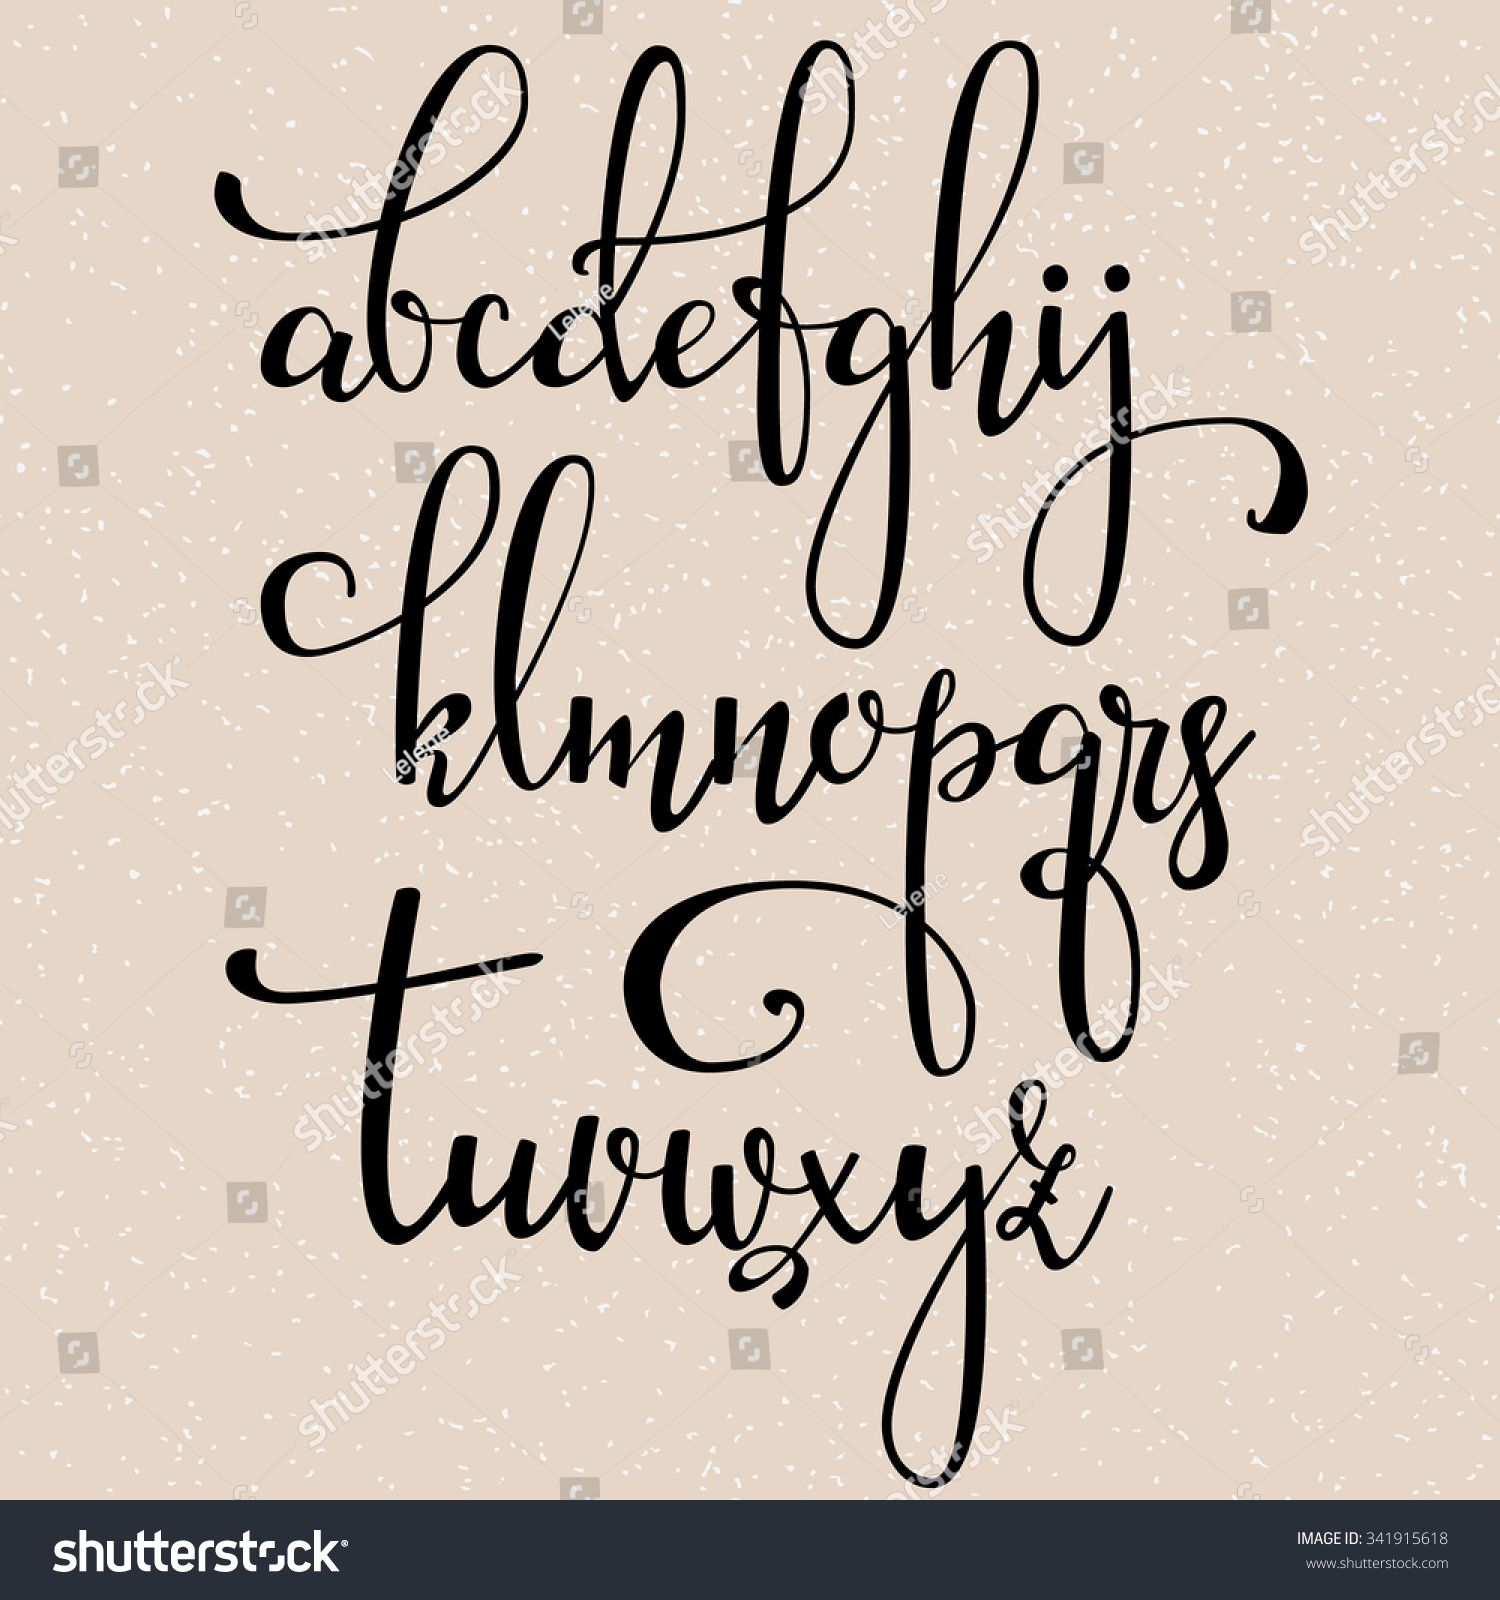 Stock Vector Handwritten Brush Style Modern Calligraphy Cursive